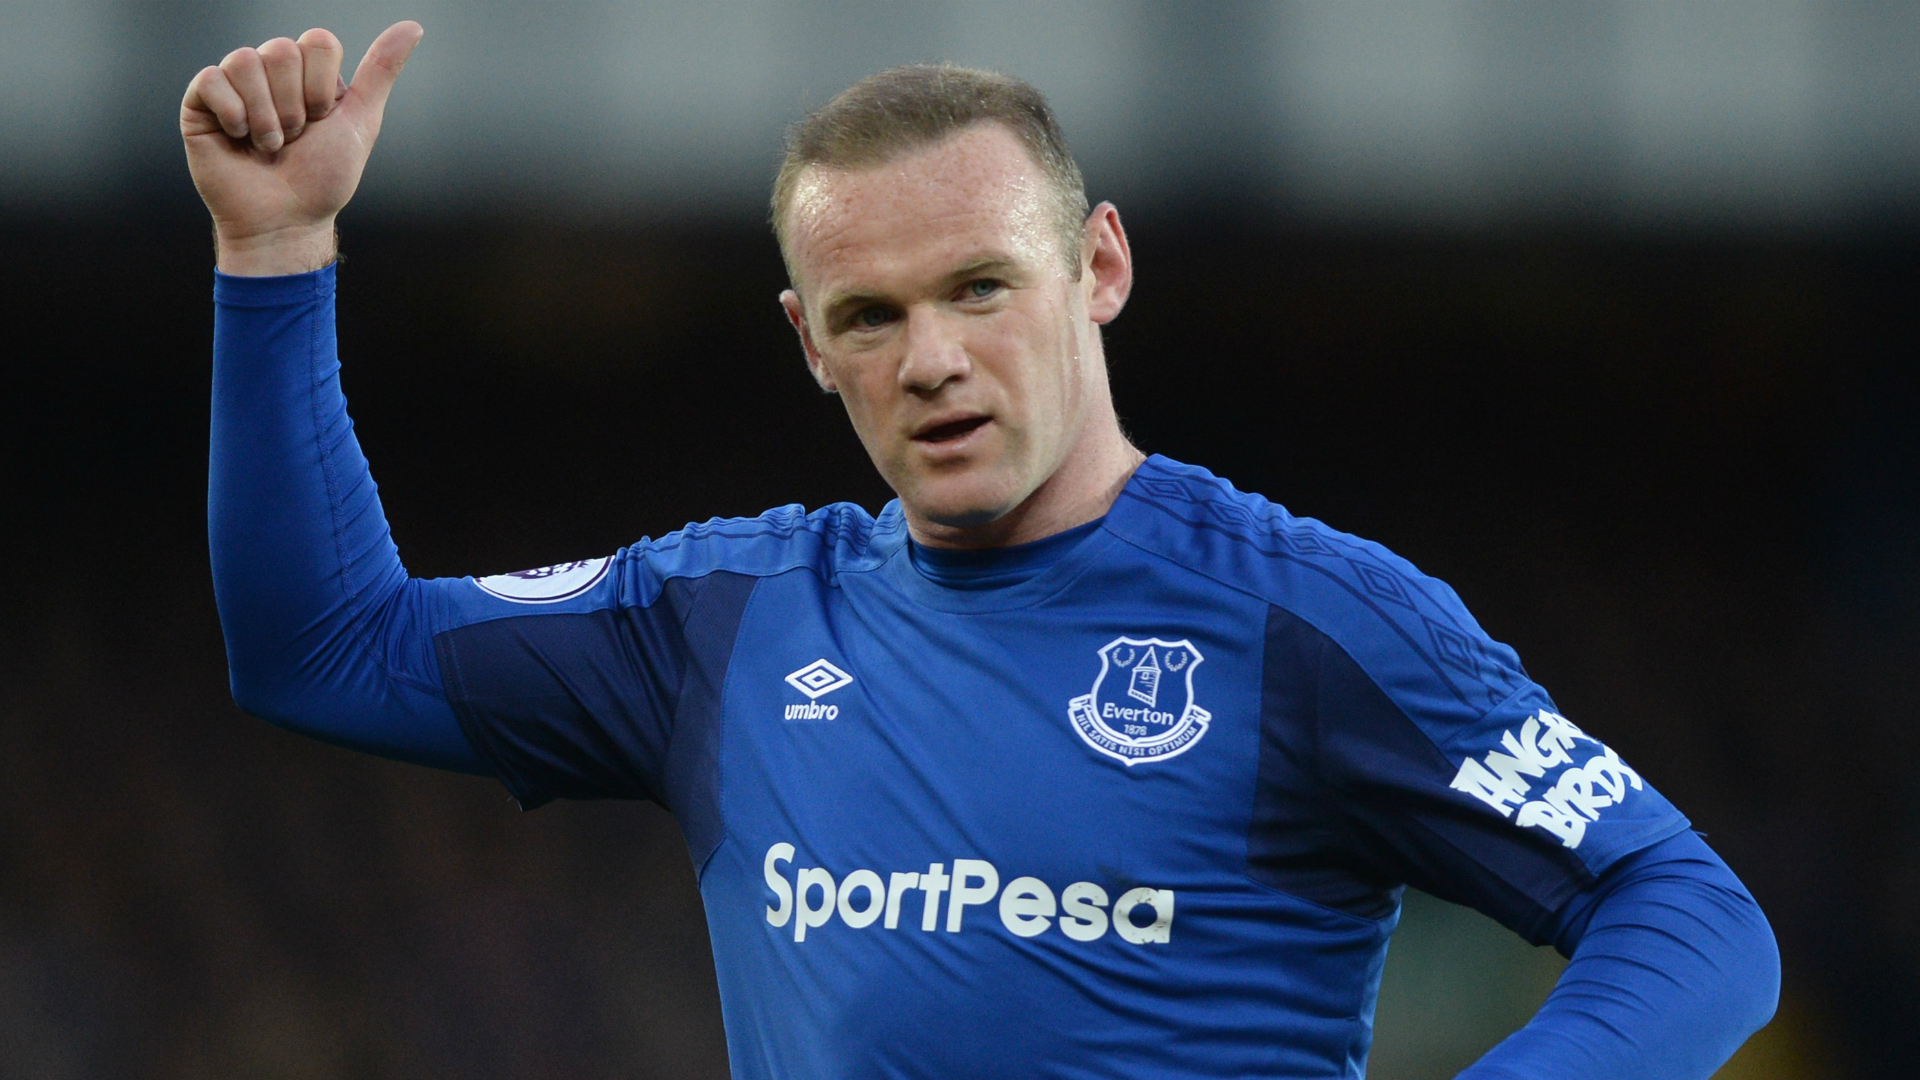 Wayne Rooney agrees to deal to join Major League Soccer's DC United